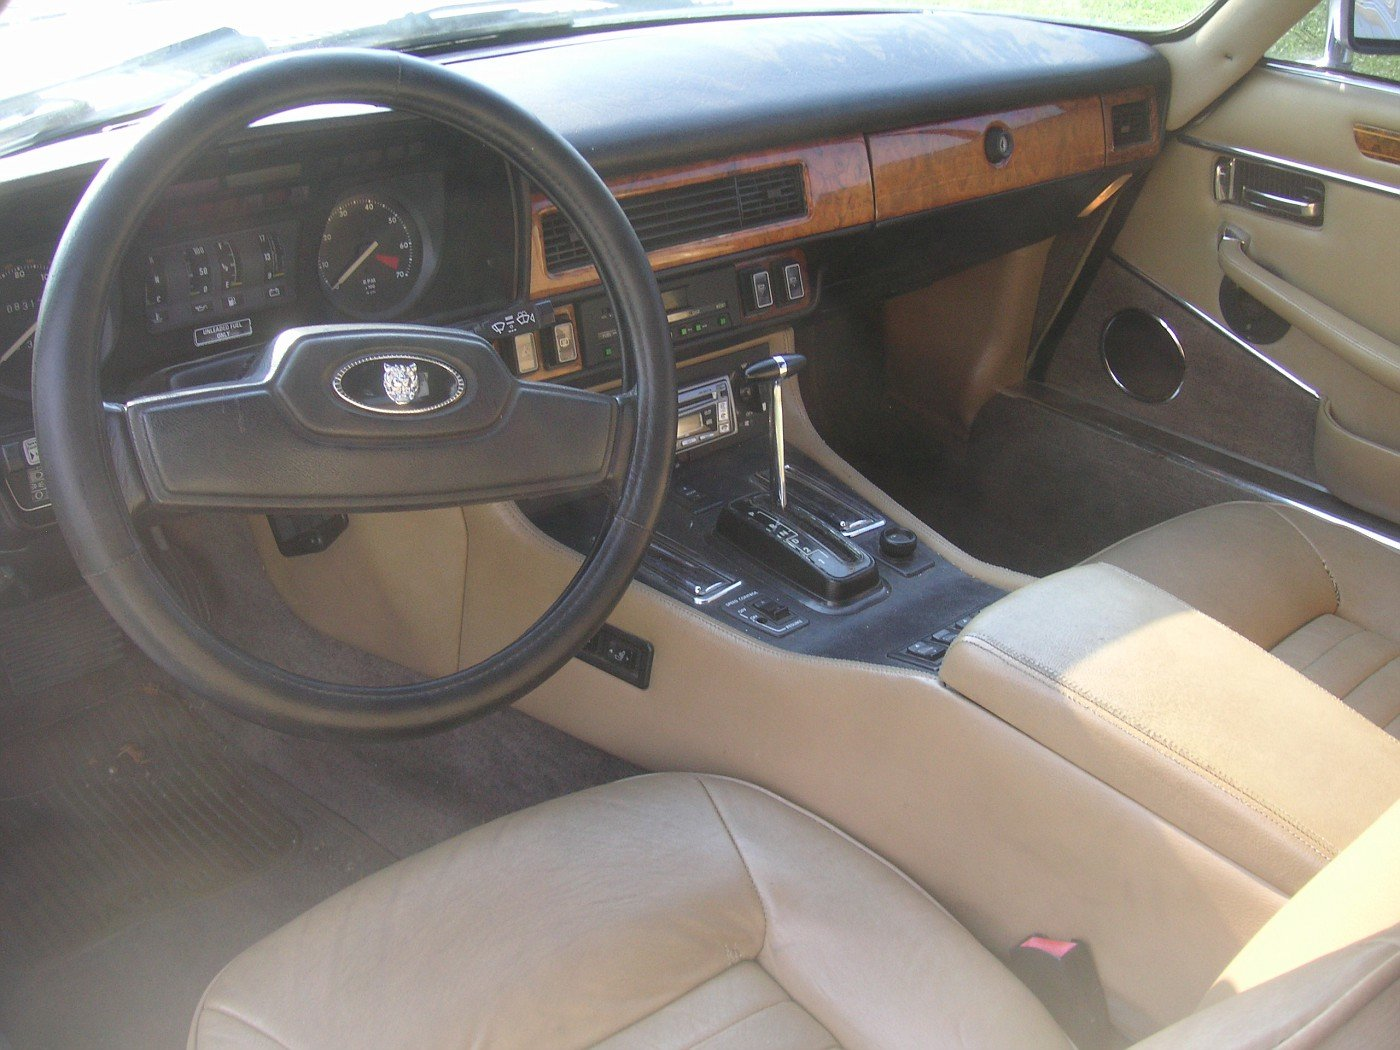 1988 Jaguar XJS V-12 Hess & Eisenhardt Convertible For Sale (picture 2 of 6)